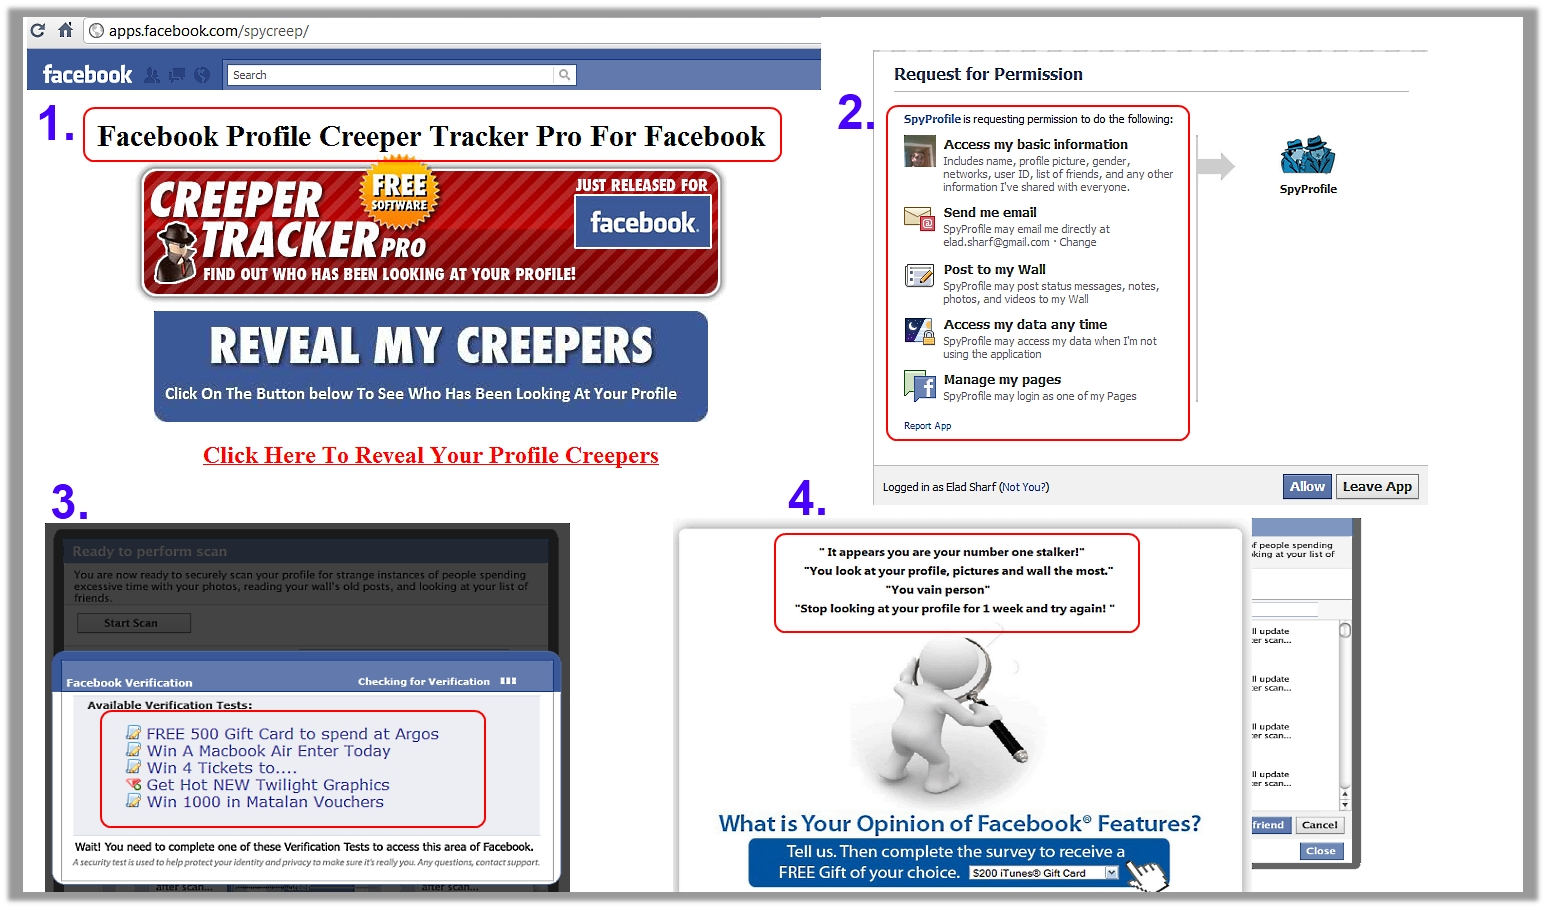 Facebook Profile Creeper Tracker